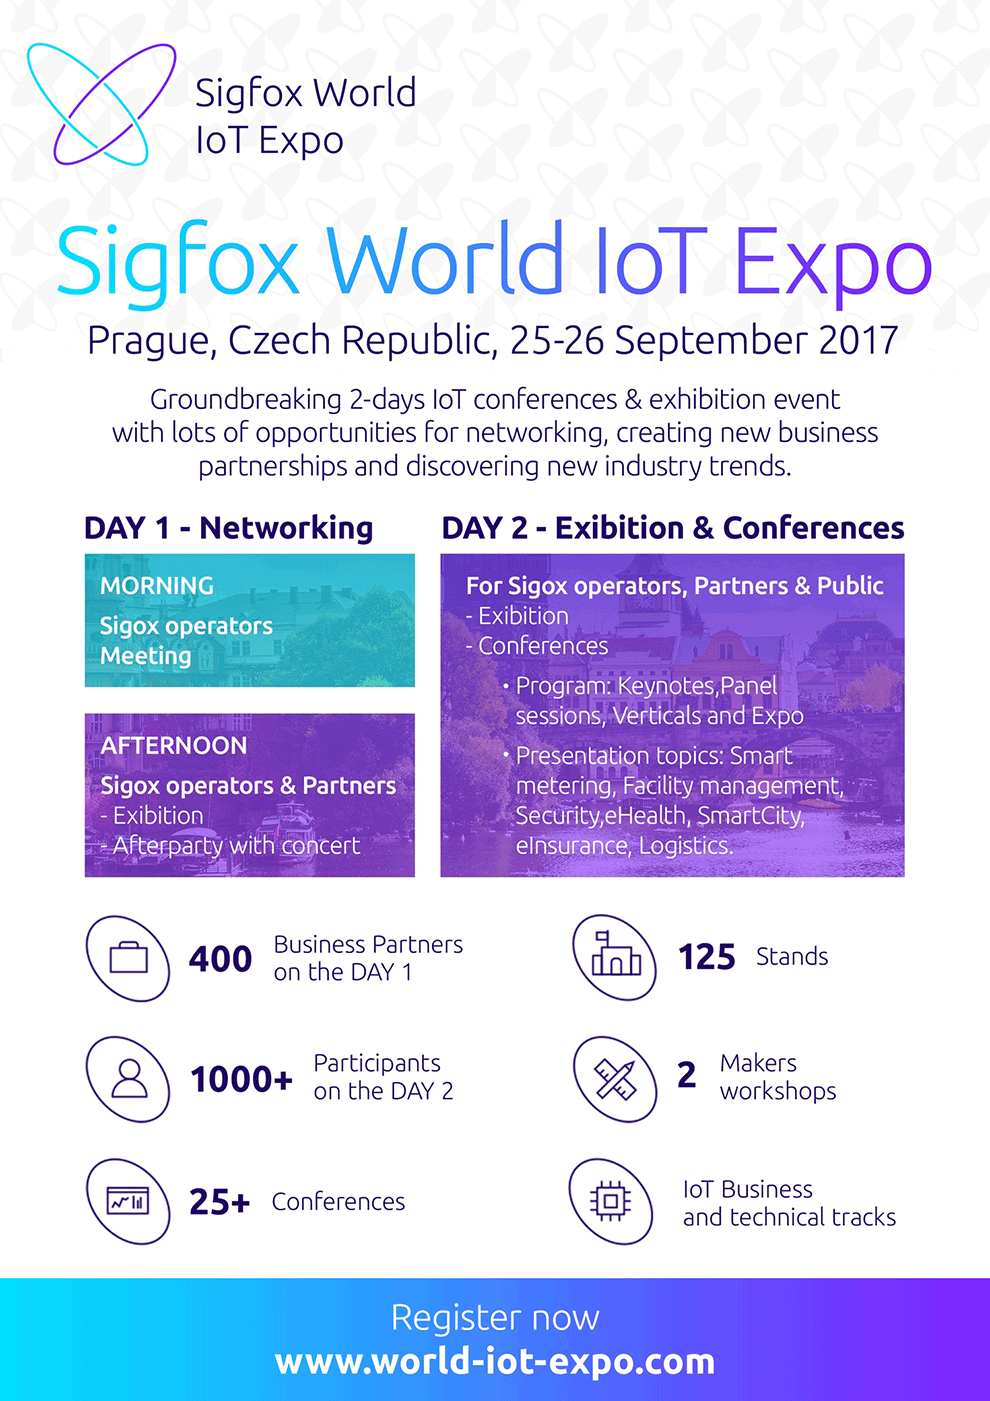 Sigfox World IoT Expo Sept 25 26